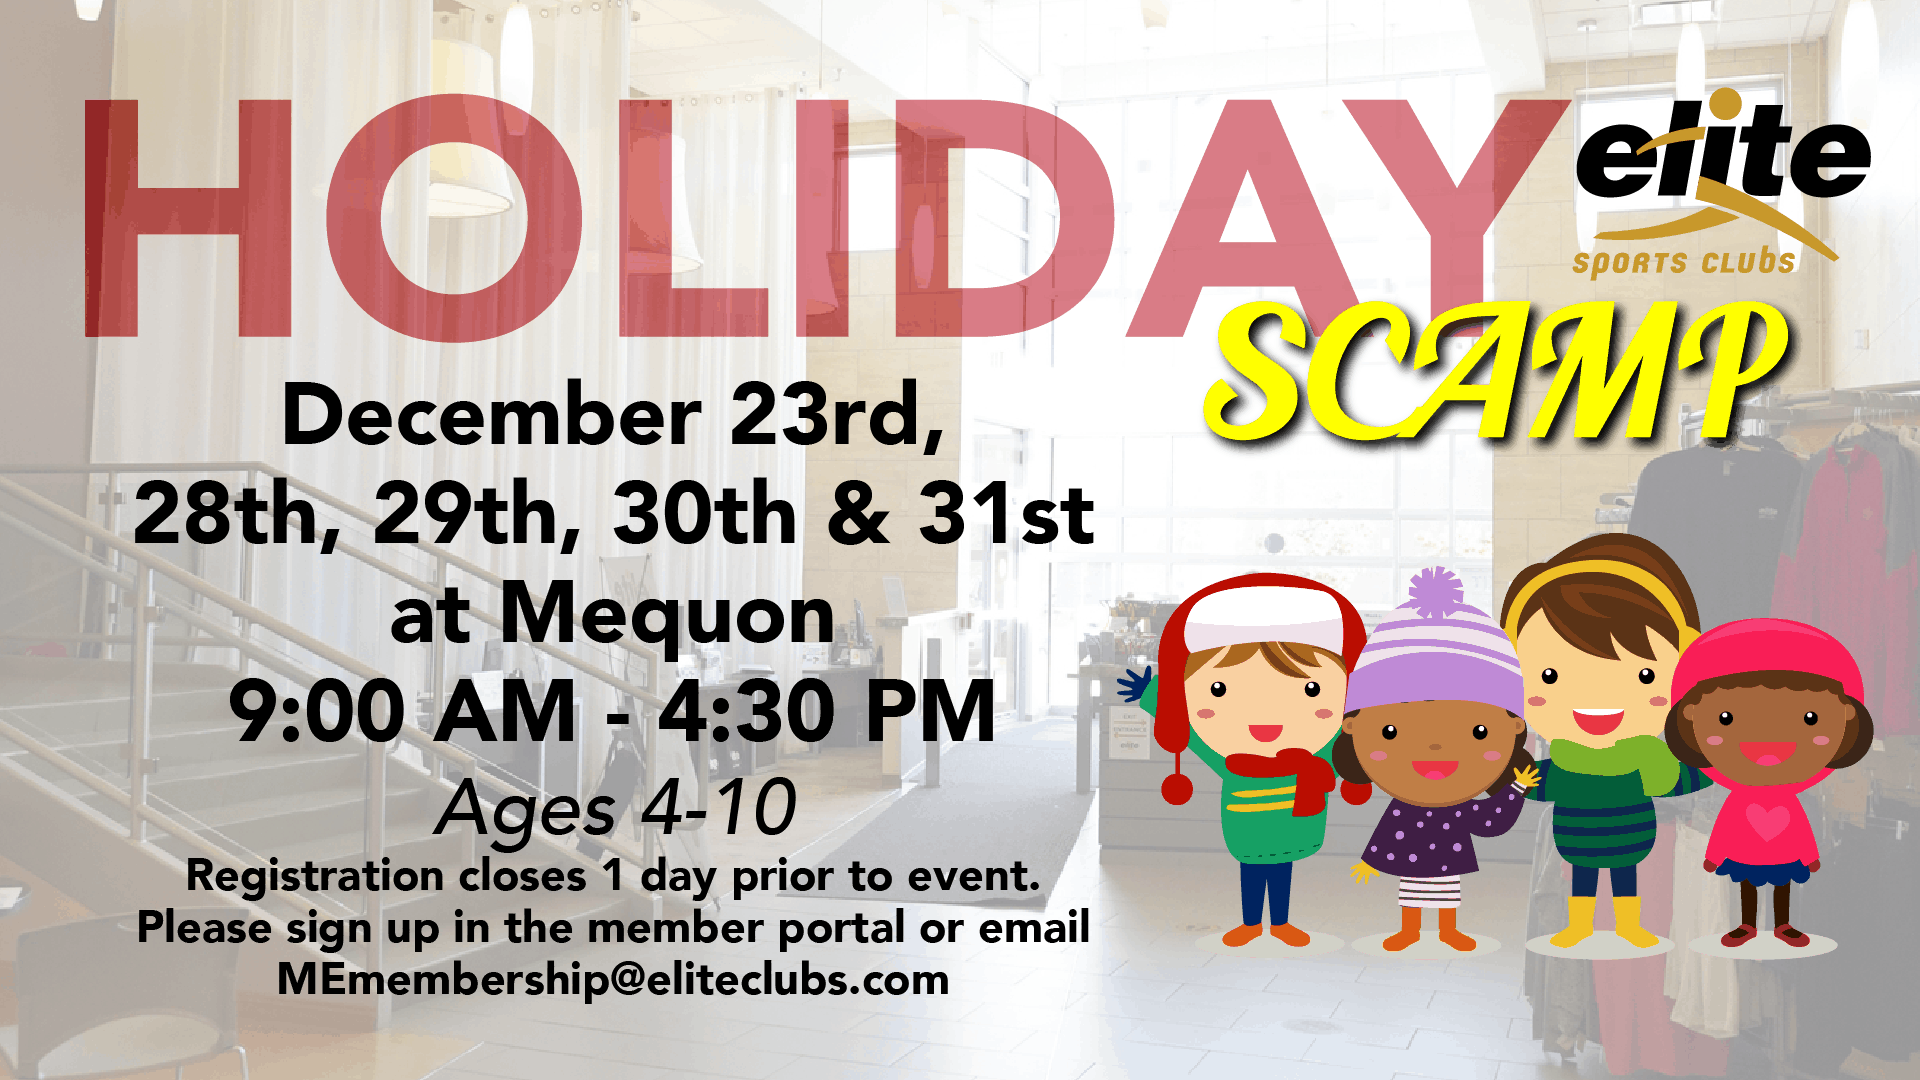 Holiday SCAMP - Elite Mequon - December 2020